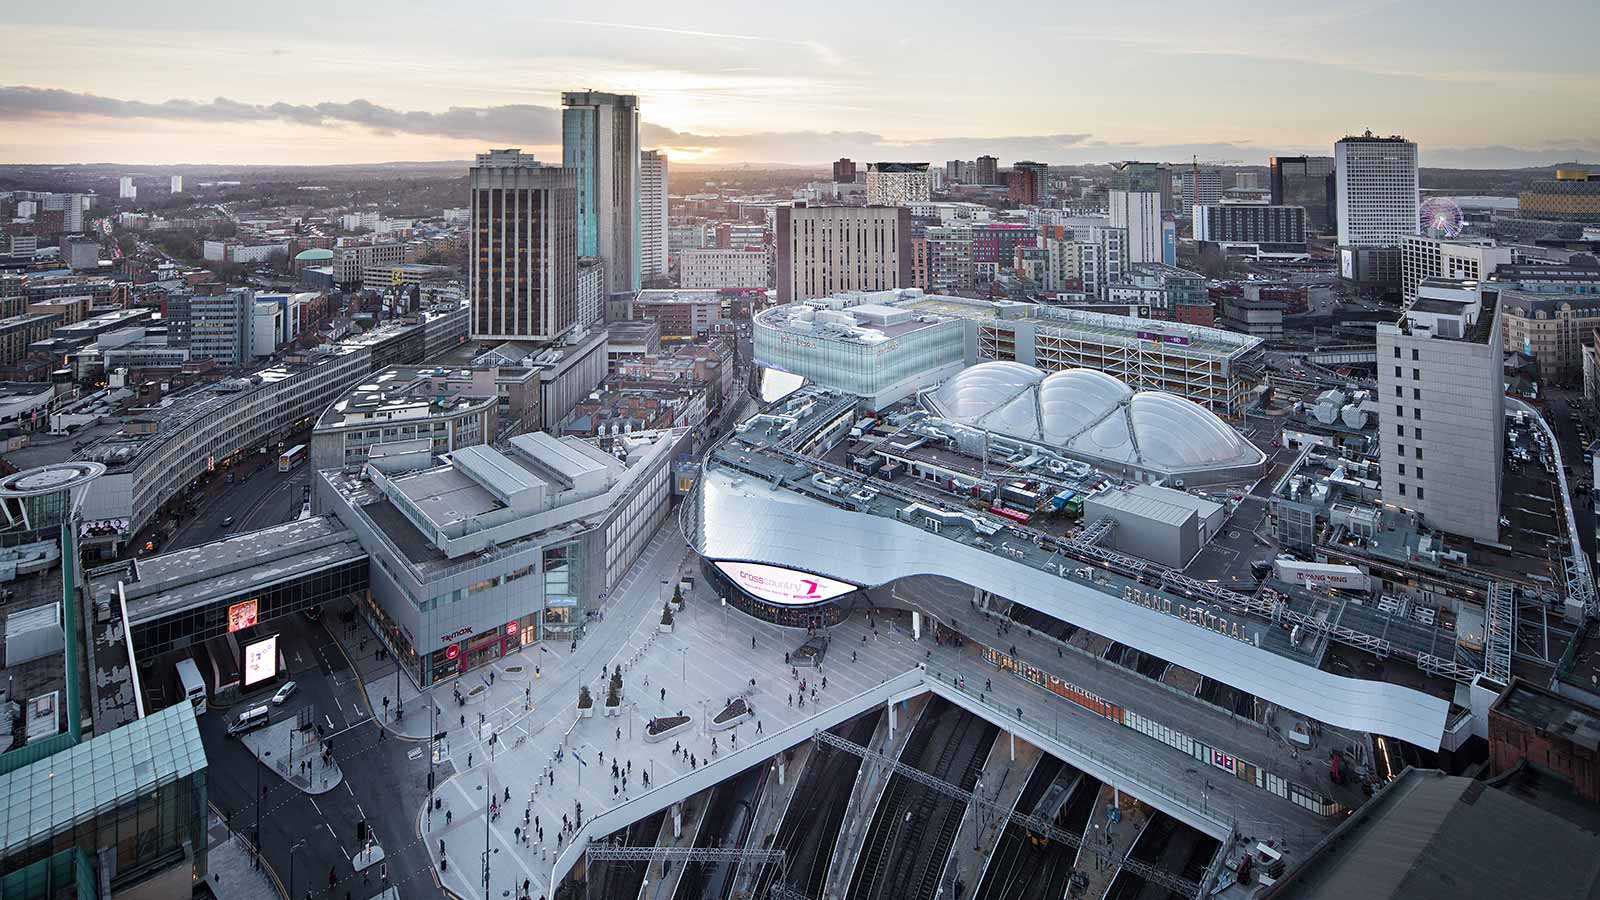 Birmingham New Street Station Aerial View - Mace Group